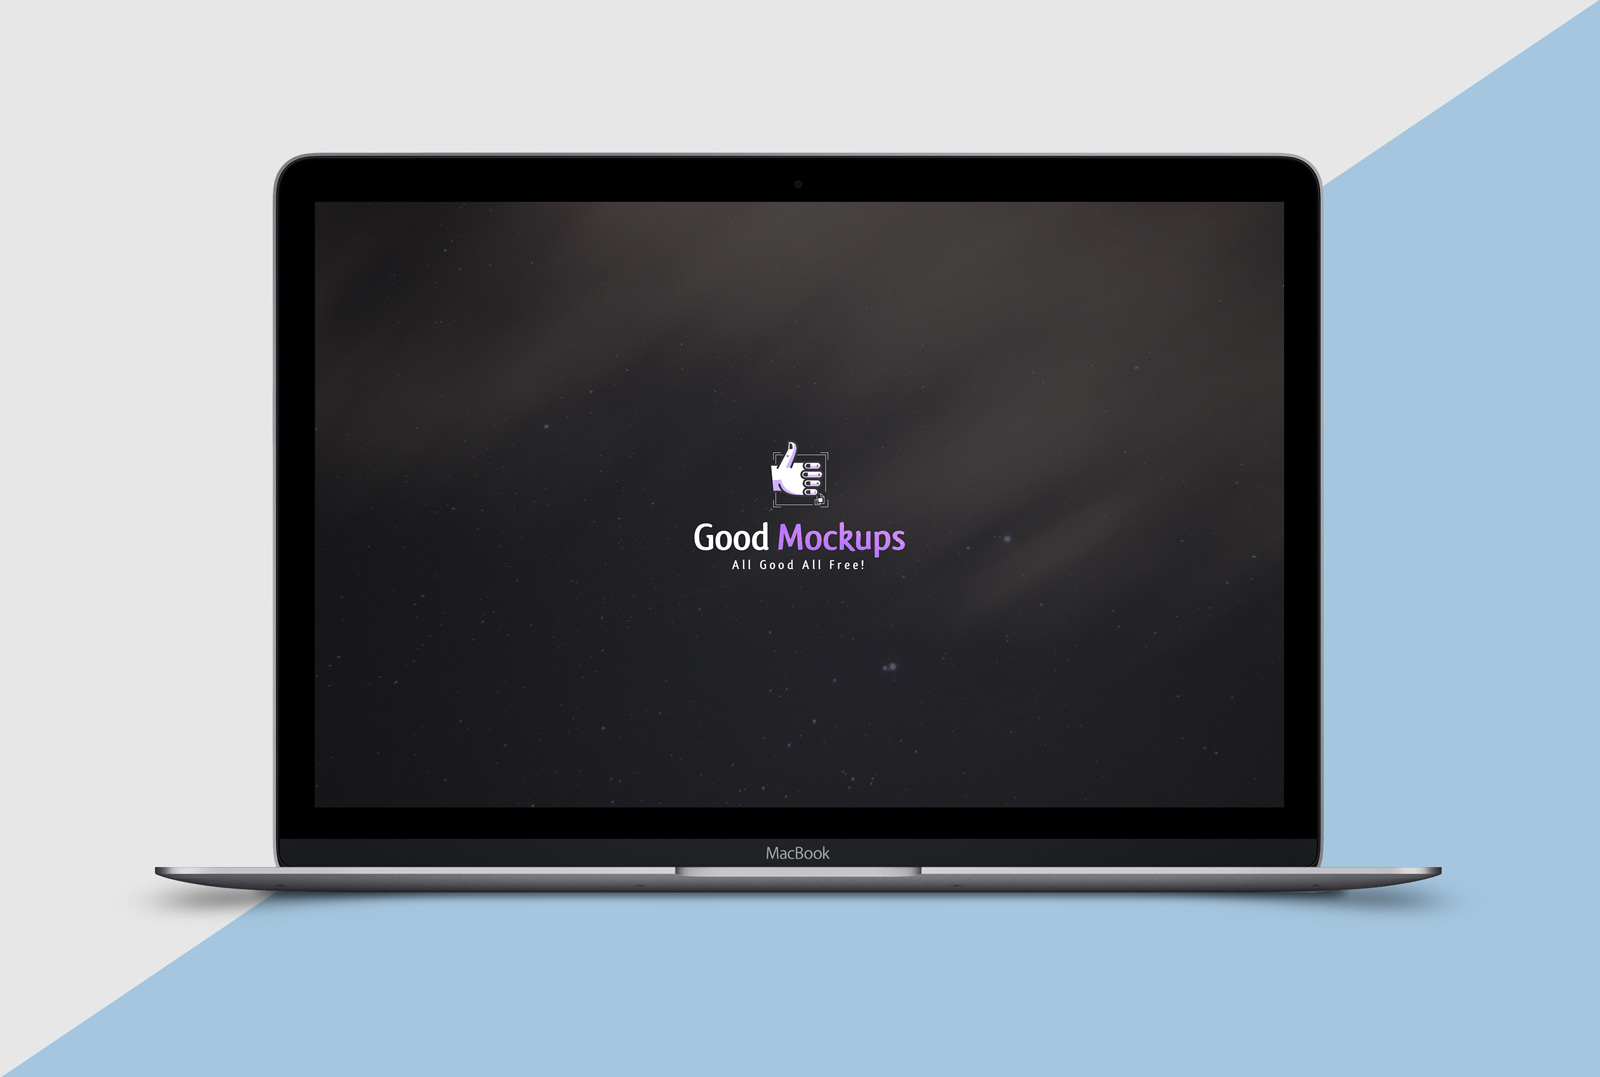 Free-Apple-MacbBook-Pro-Space-Gray-Mockup-PSD